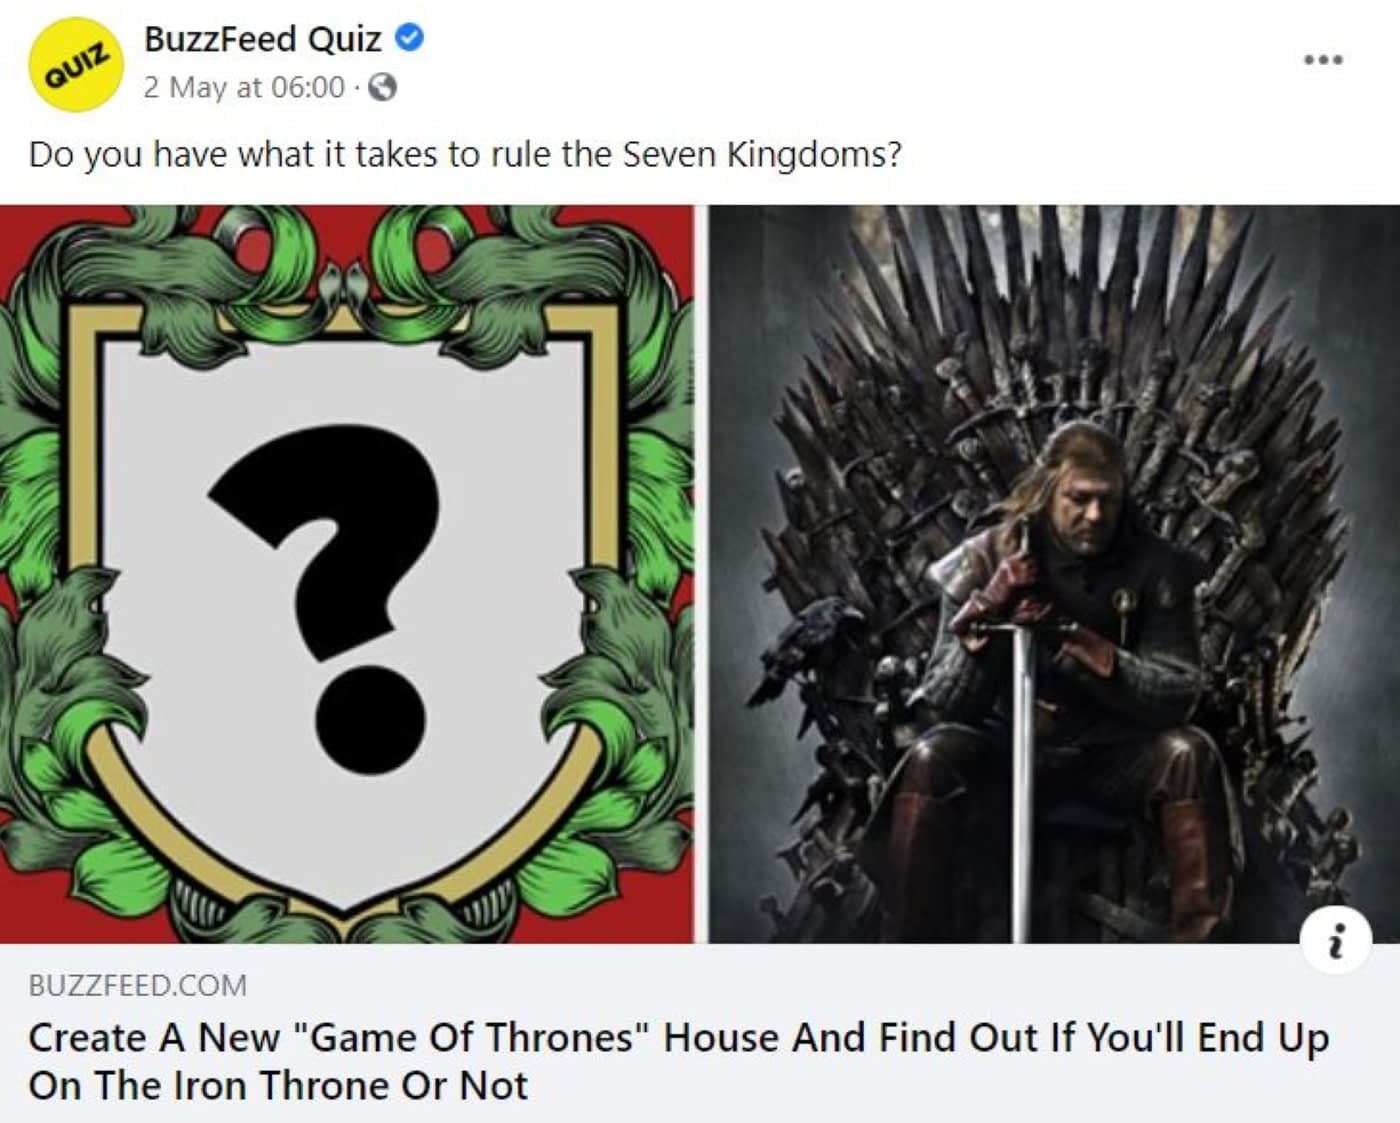 How to Use Quizzes: A Game of Thrones themes quiz